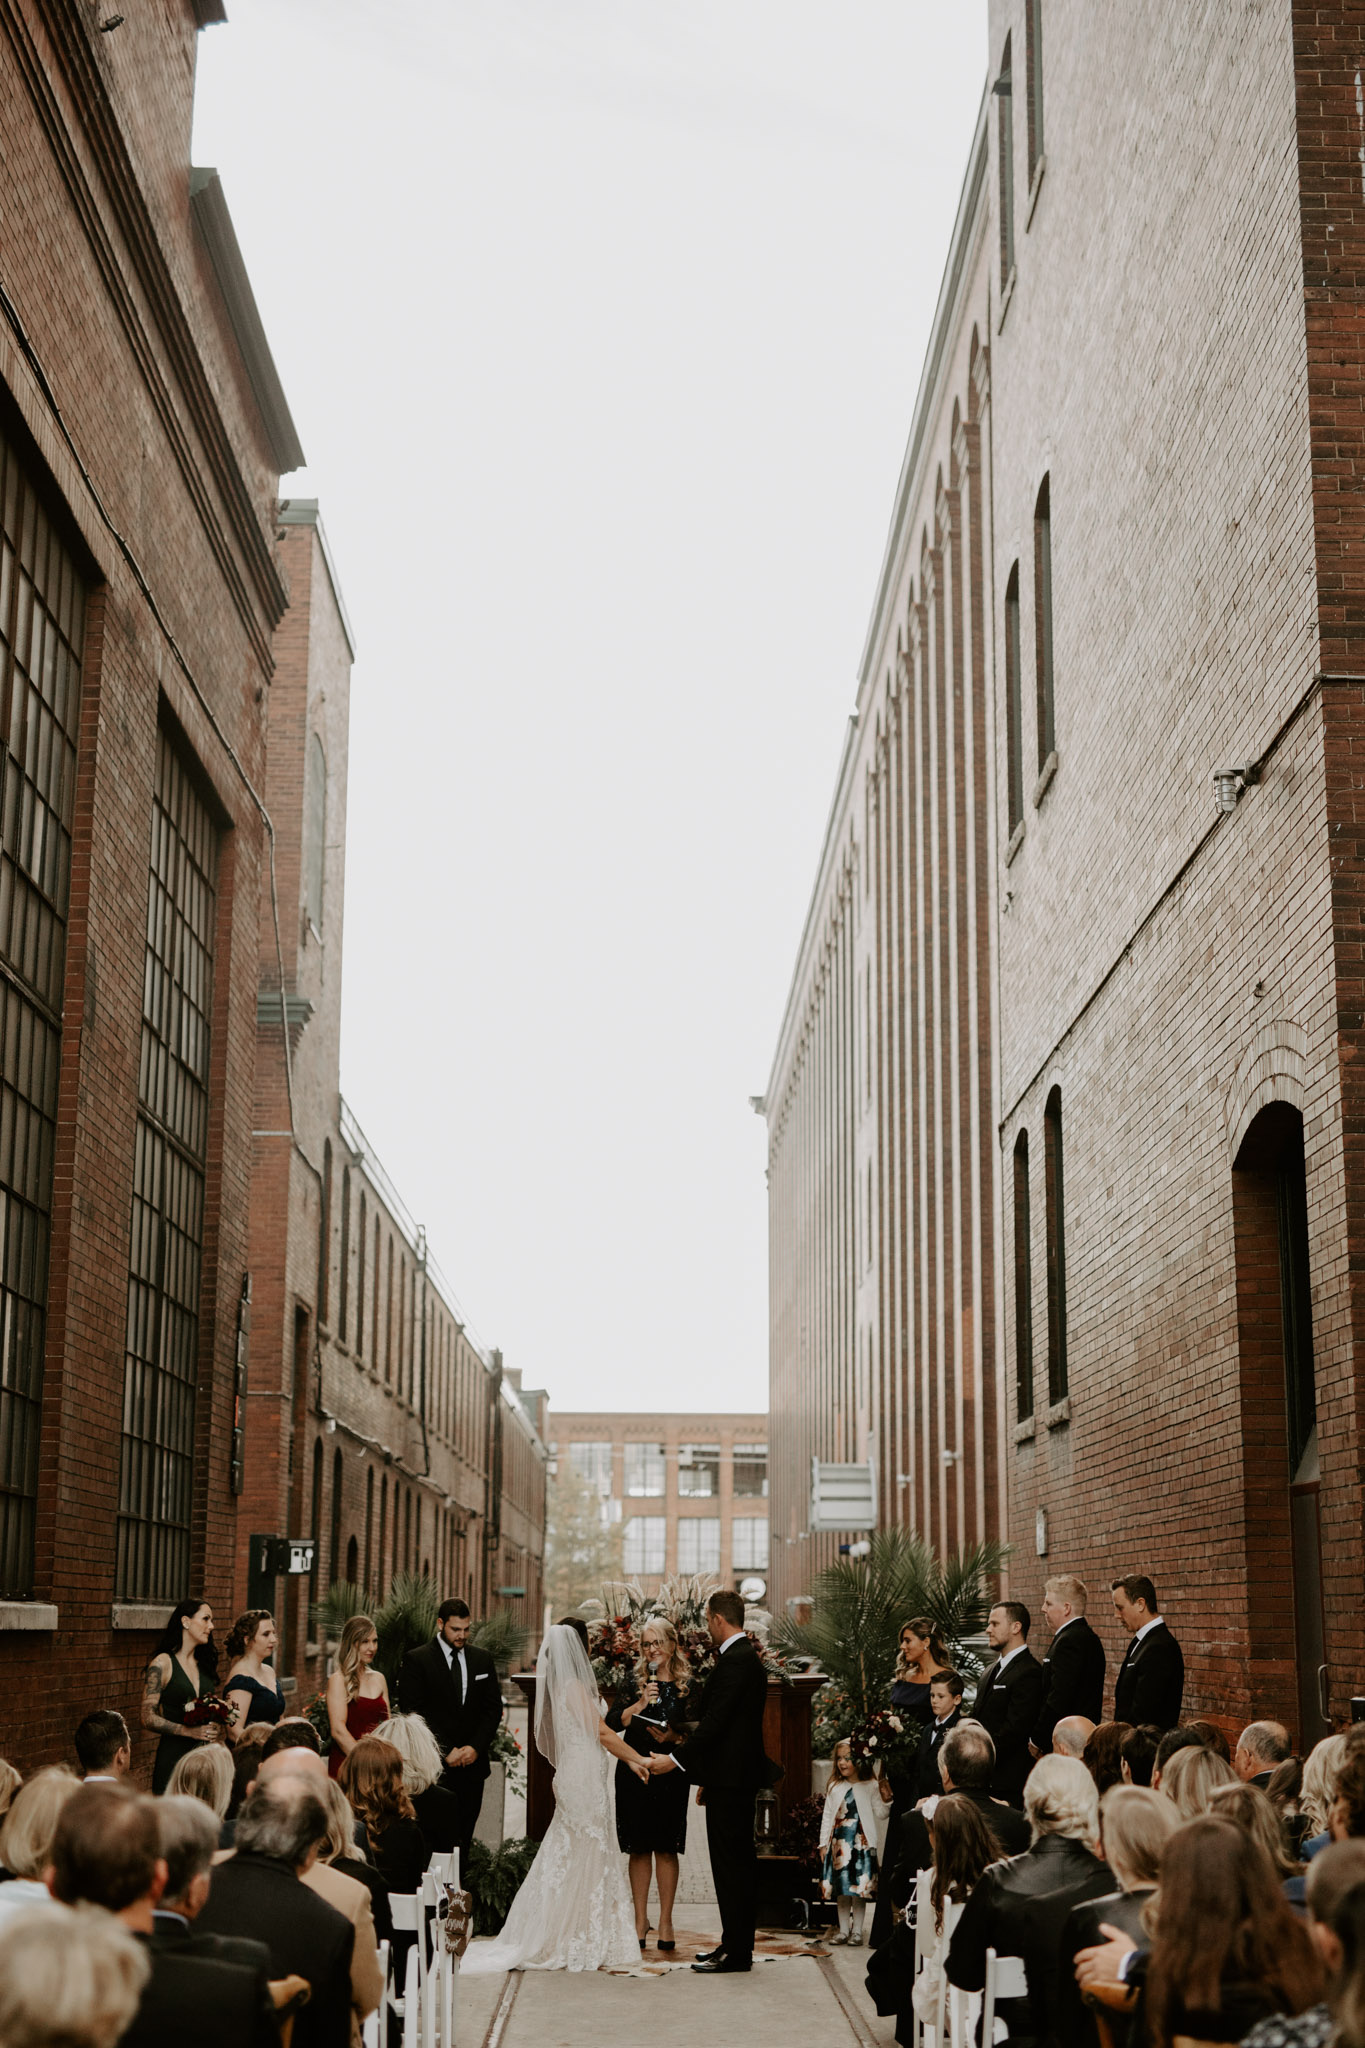 Liberty Village Wedding - bride and groom at the outdoor alter